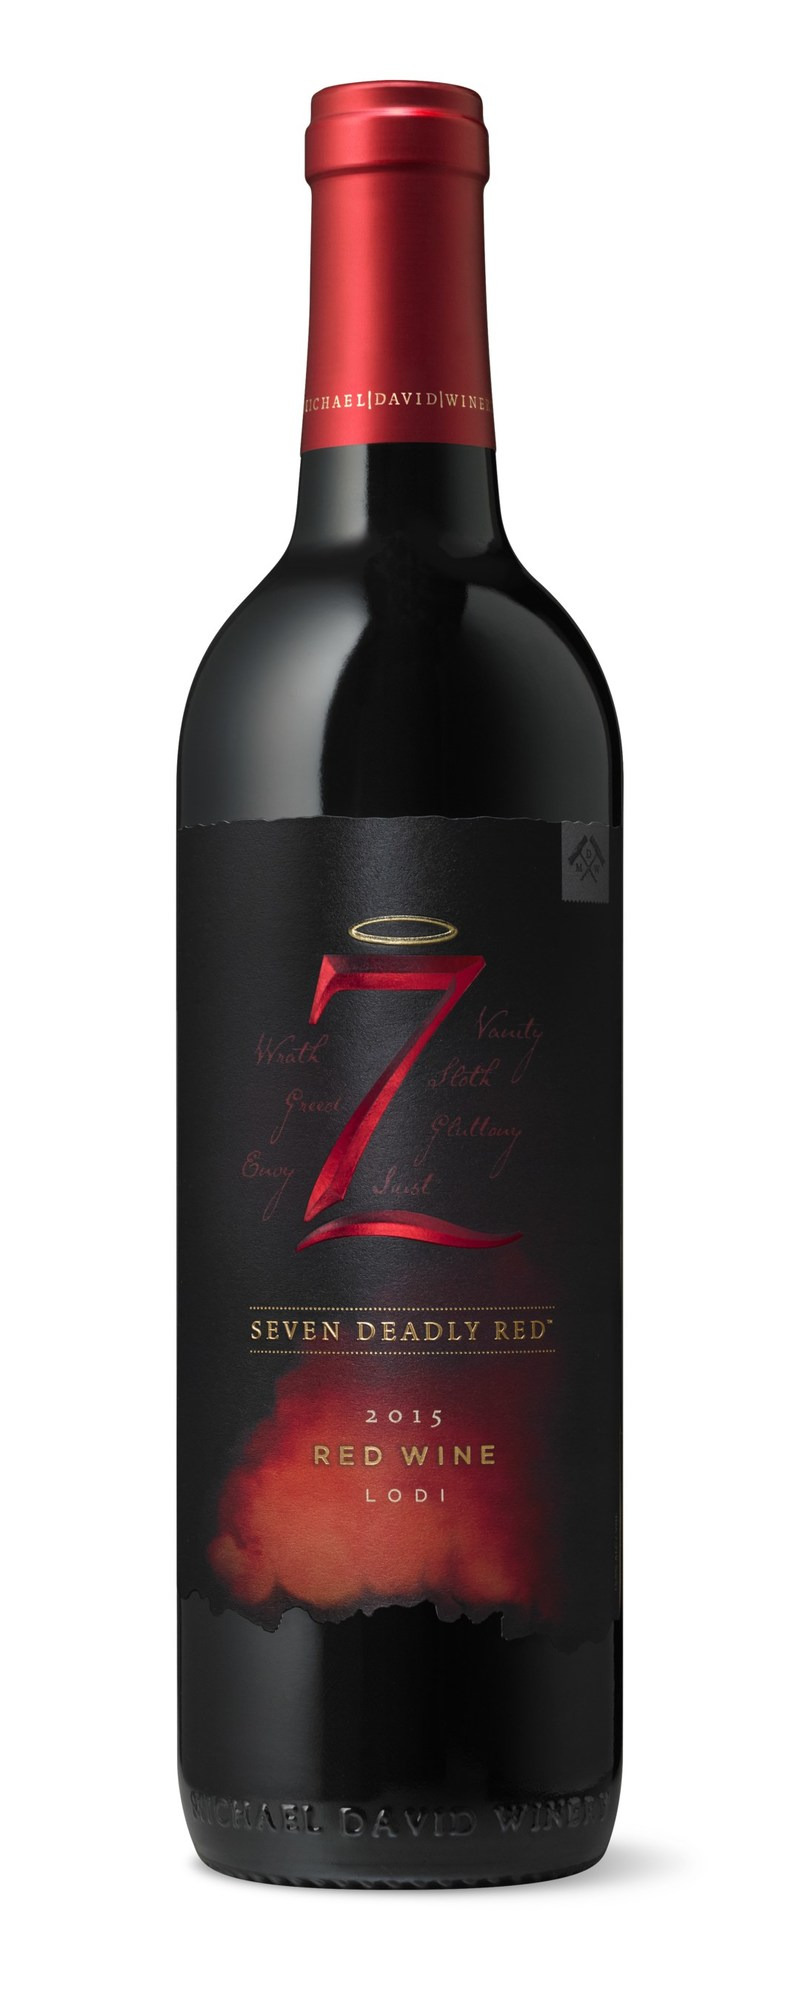 2015 7 Deadly Red